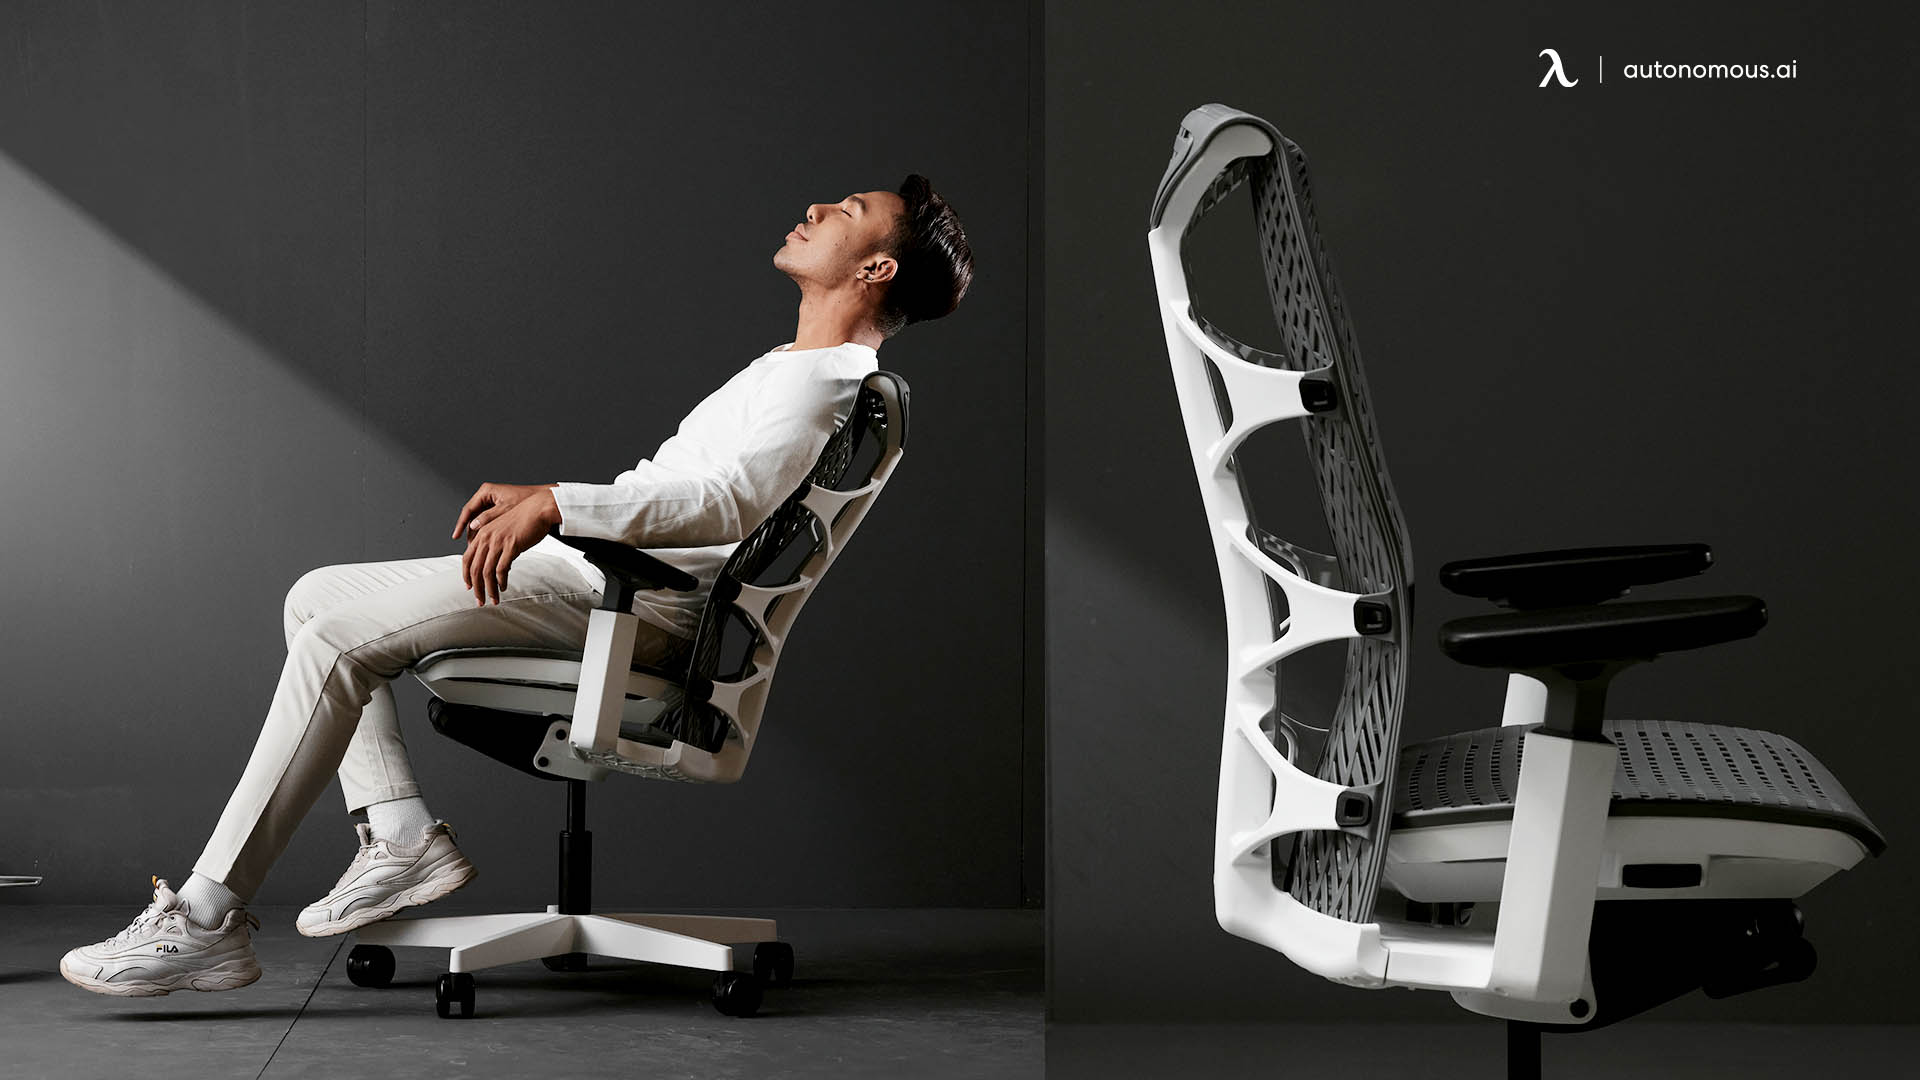 Why a black and white chair only?